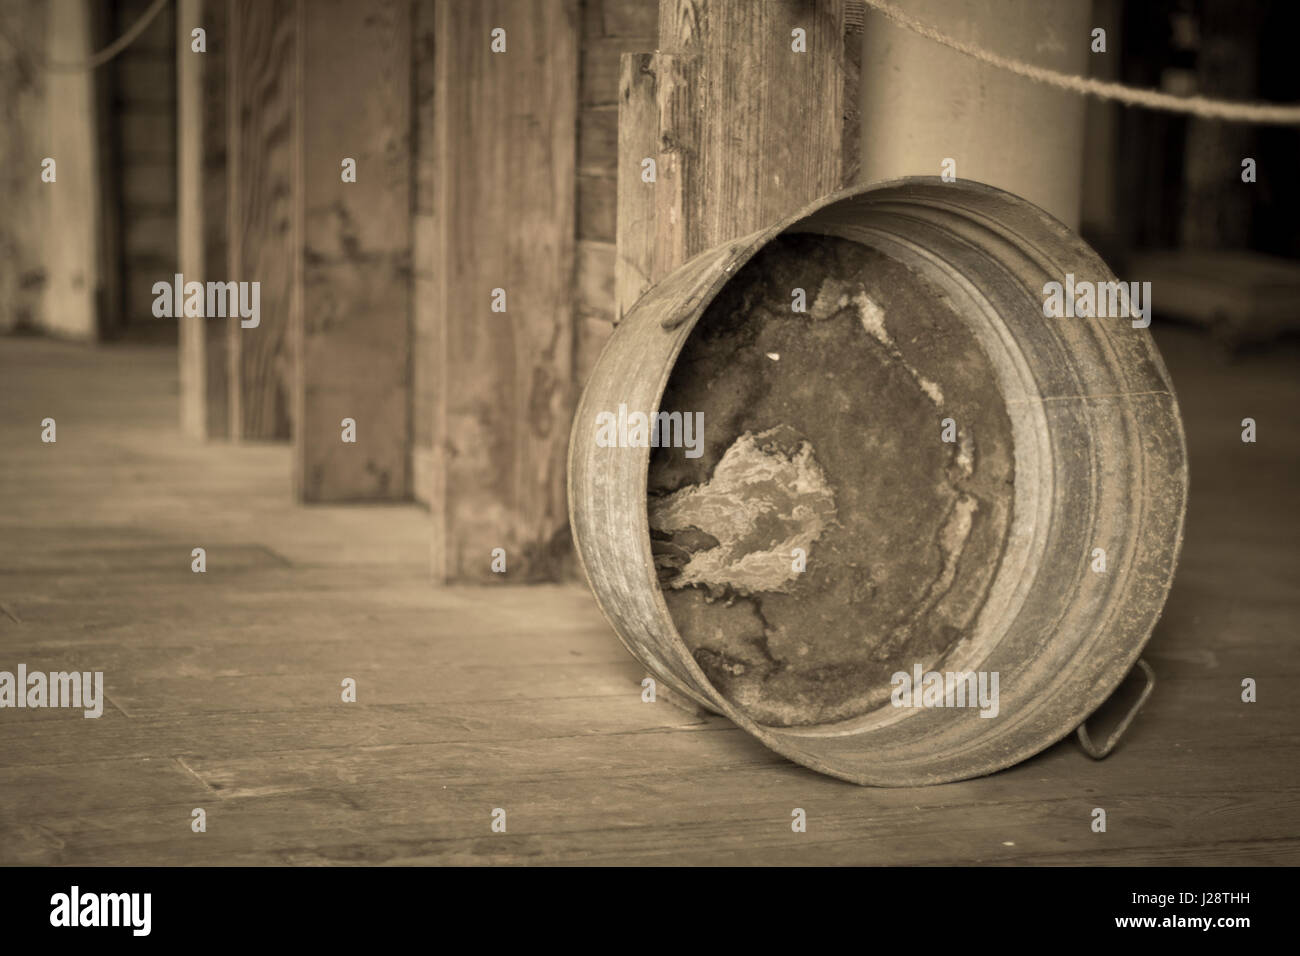 Old washtub in a warehouse - Stock Image